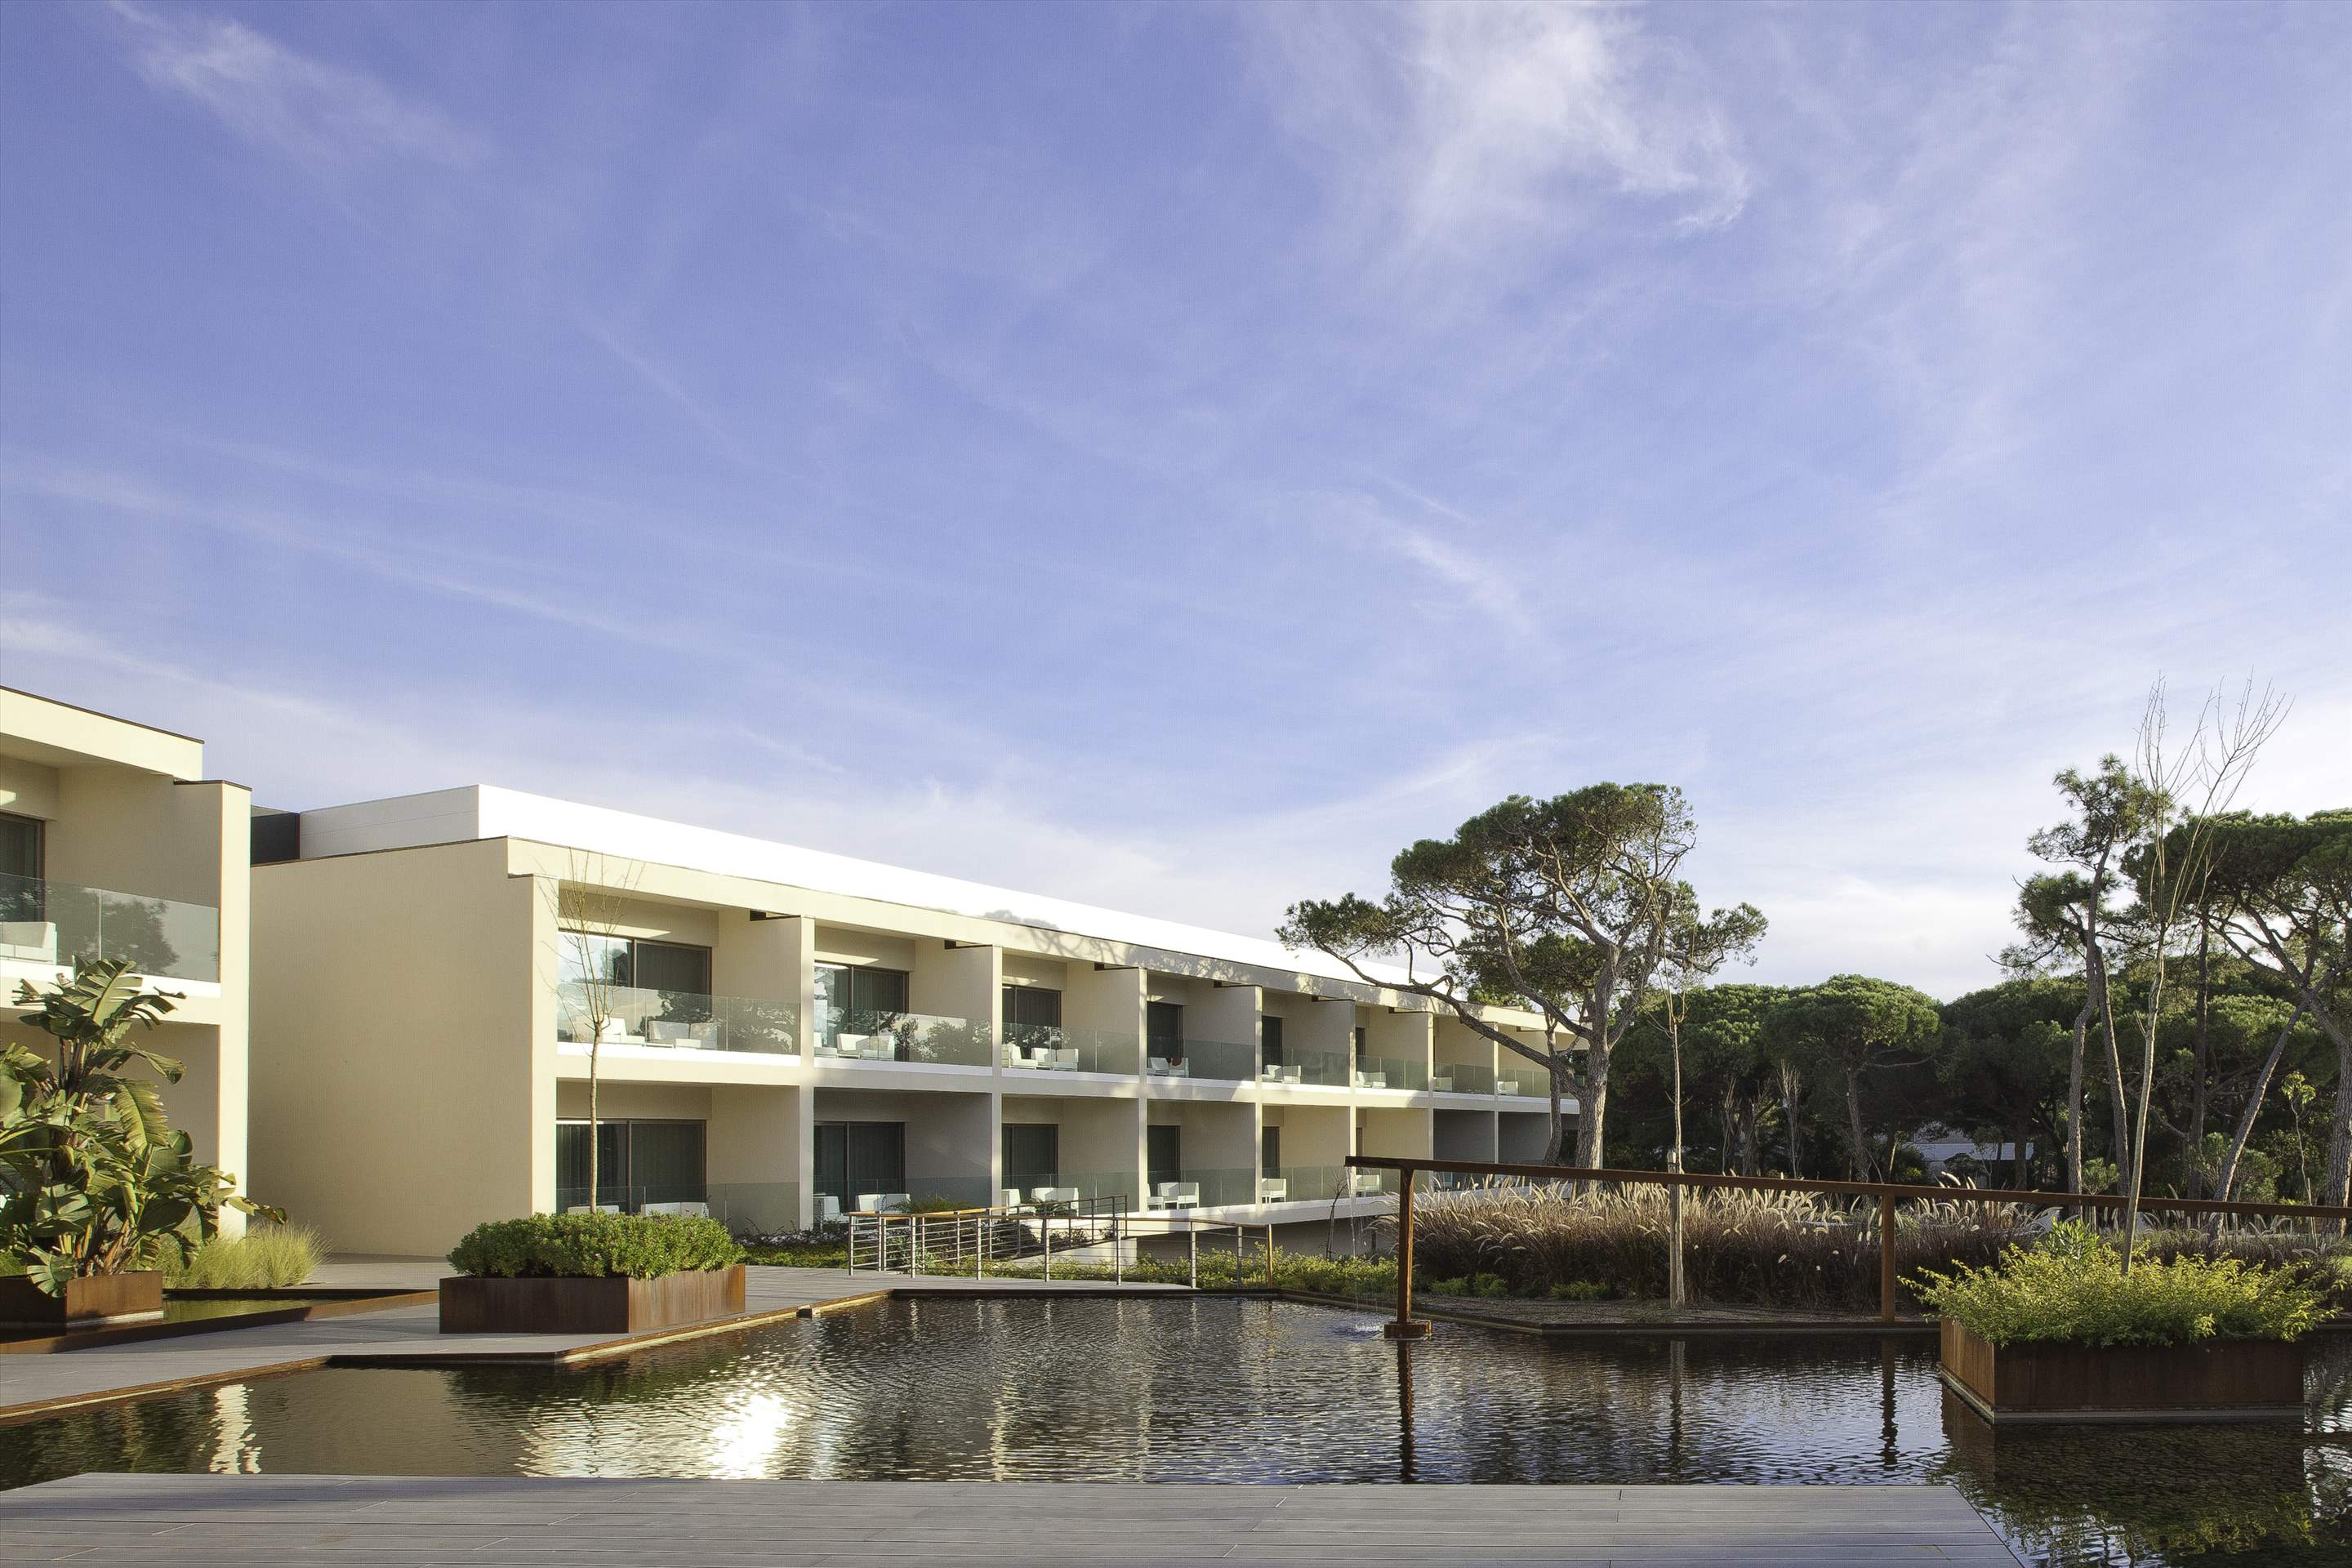 Martinhal Cascais Hotel, Deluxe Room, BB Basis, 1 bedroom hotel in Lisbon Coast, Lisbon Photo #2